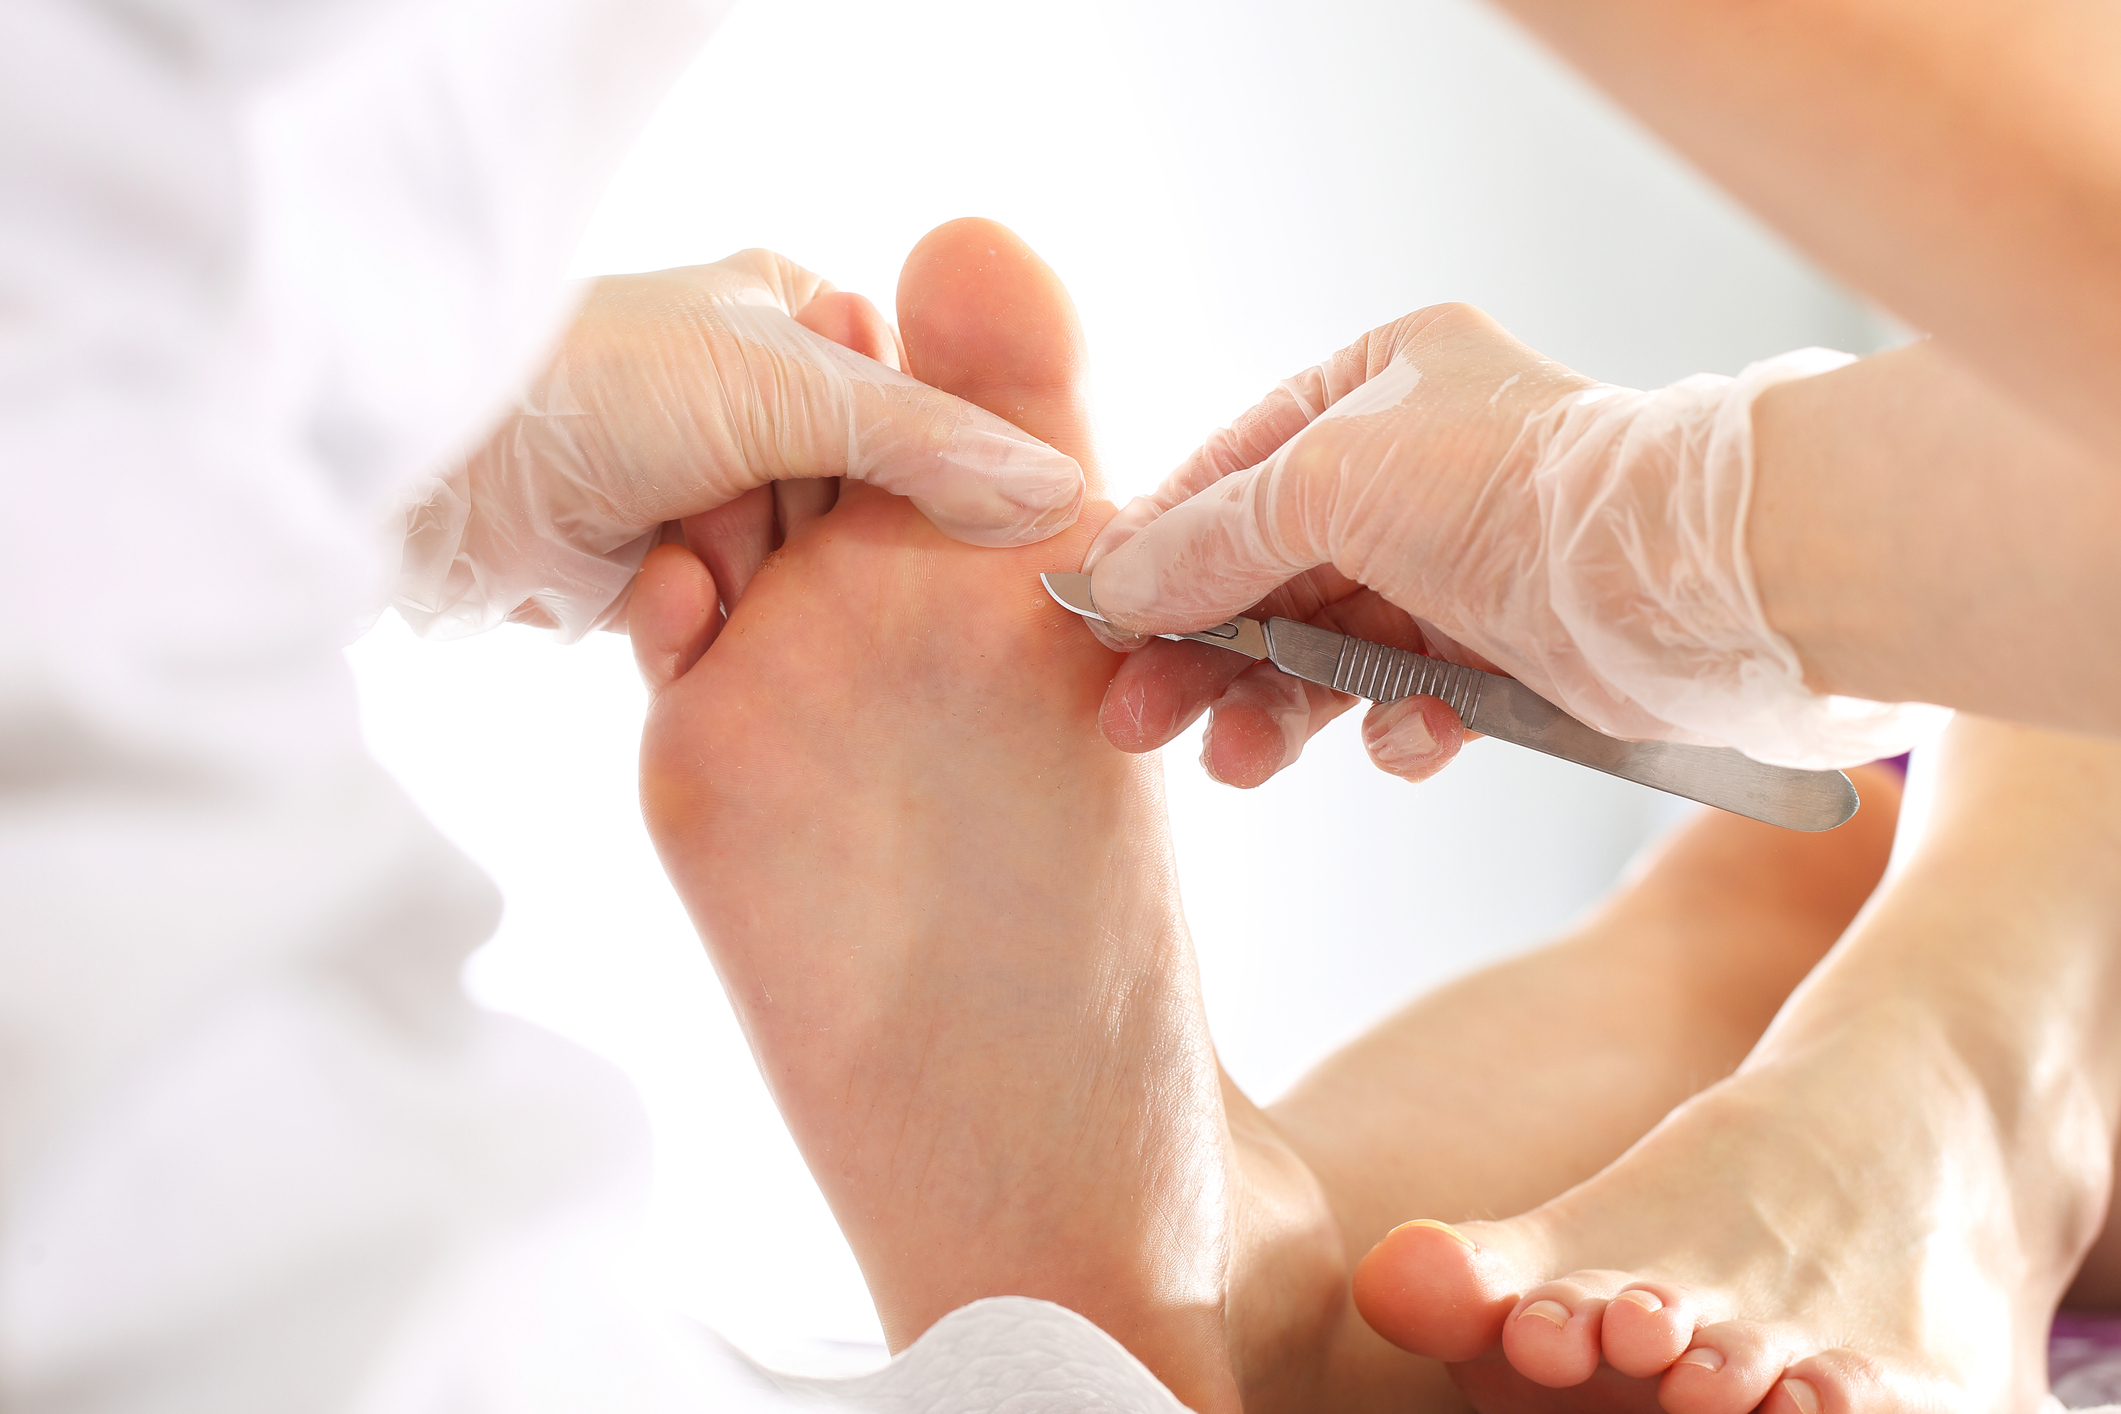 Friendly & gentle professionals. - At MEDI PEDI we have a contemporary approach to foot care. Our highly skilled practitioners offer the highest standard of professionalism whilst we believe in making your experience one of comfort and care. Learn more ➝